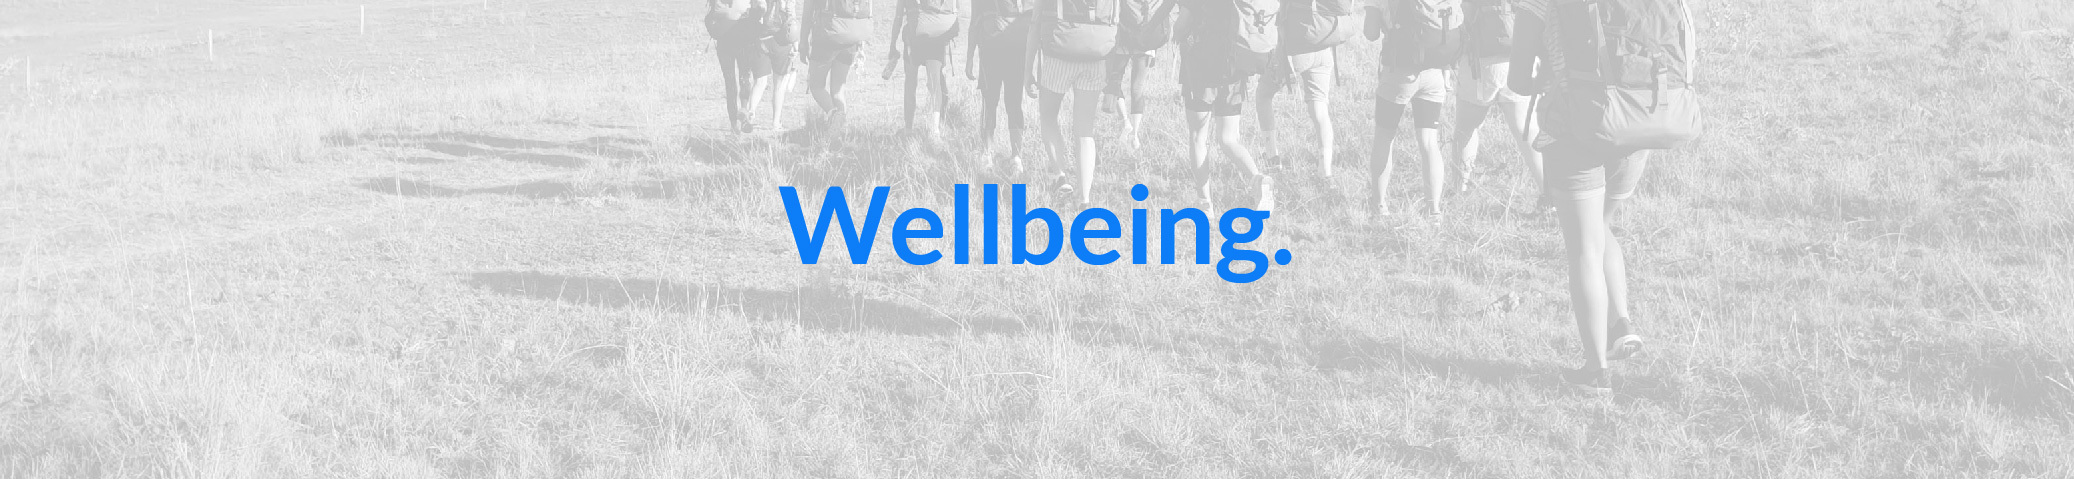 Nd Wellbeing 01